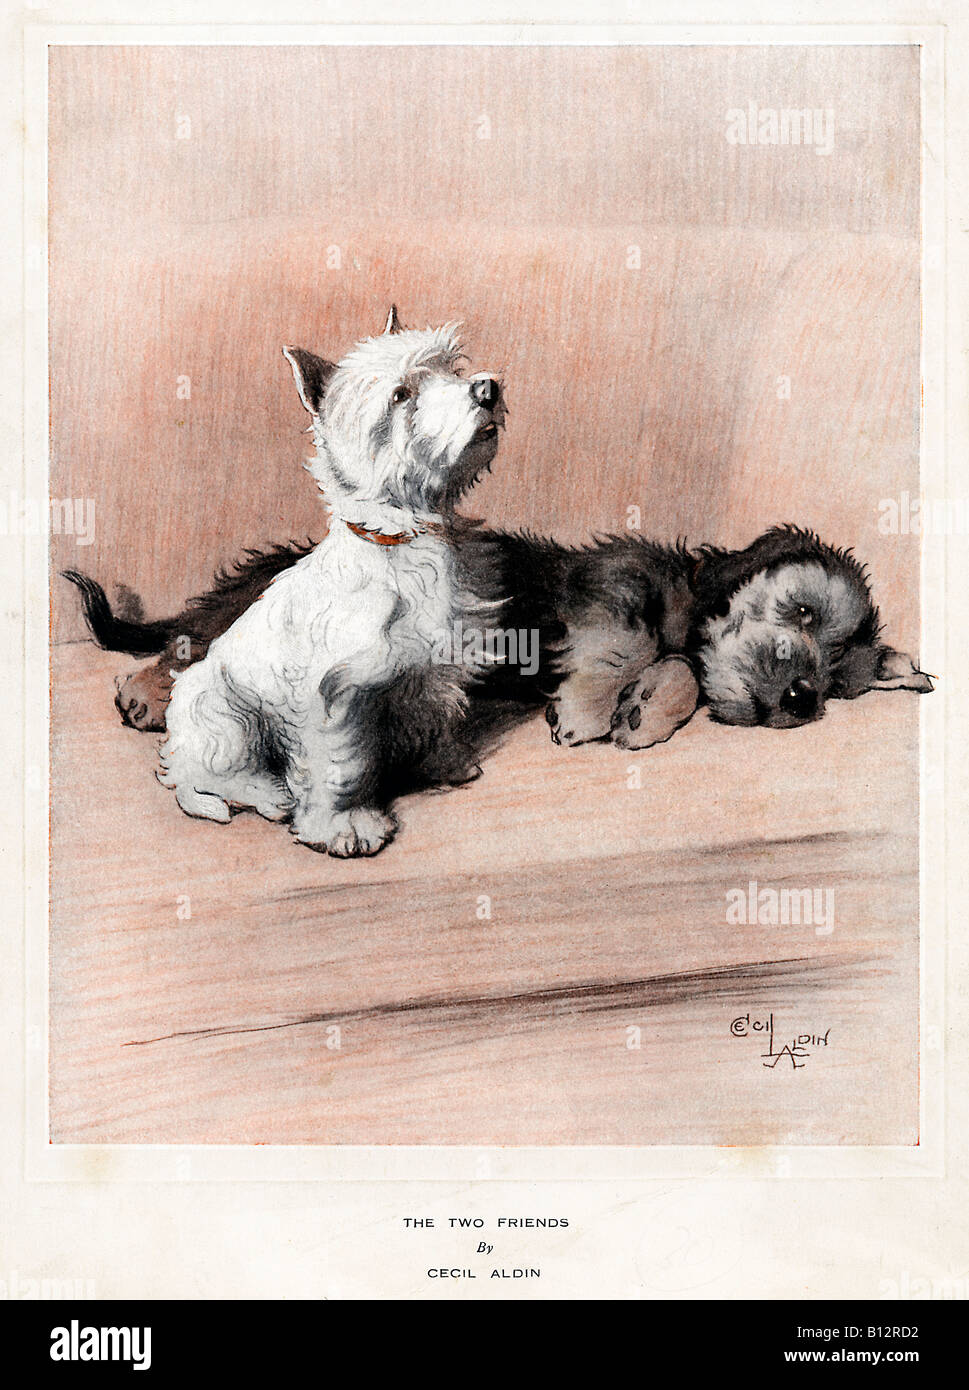 Two Friends 1920s illustration of a couple of dogs by the famous animal illustrator Cecil Aldin - Stock Image